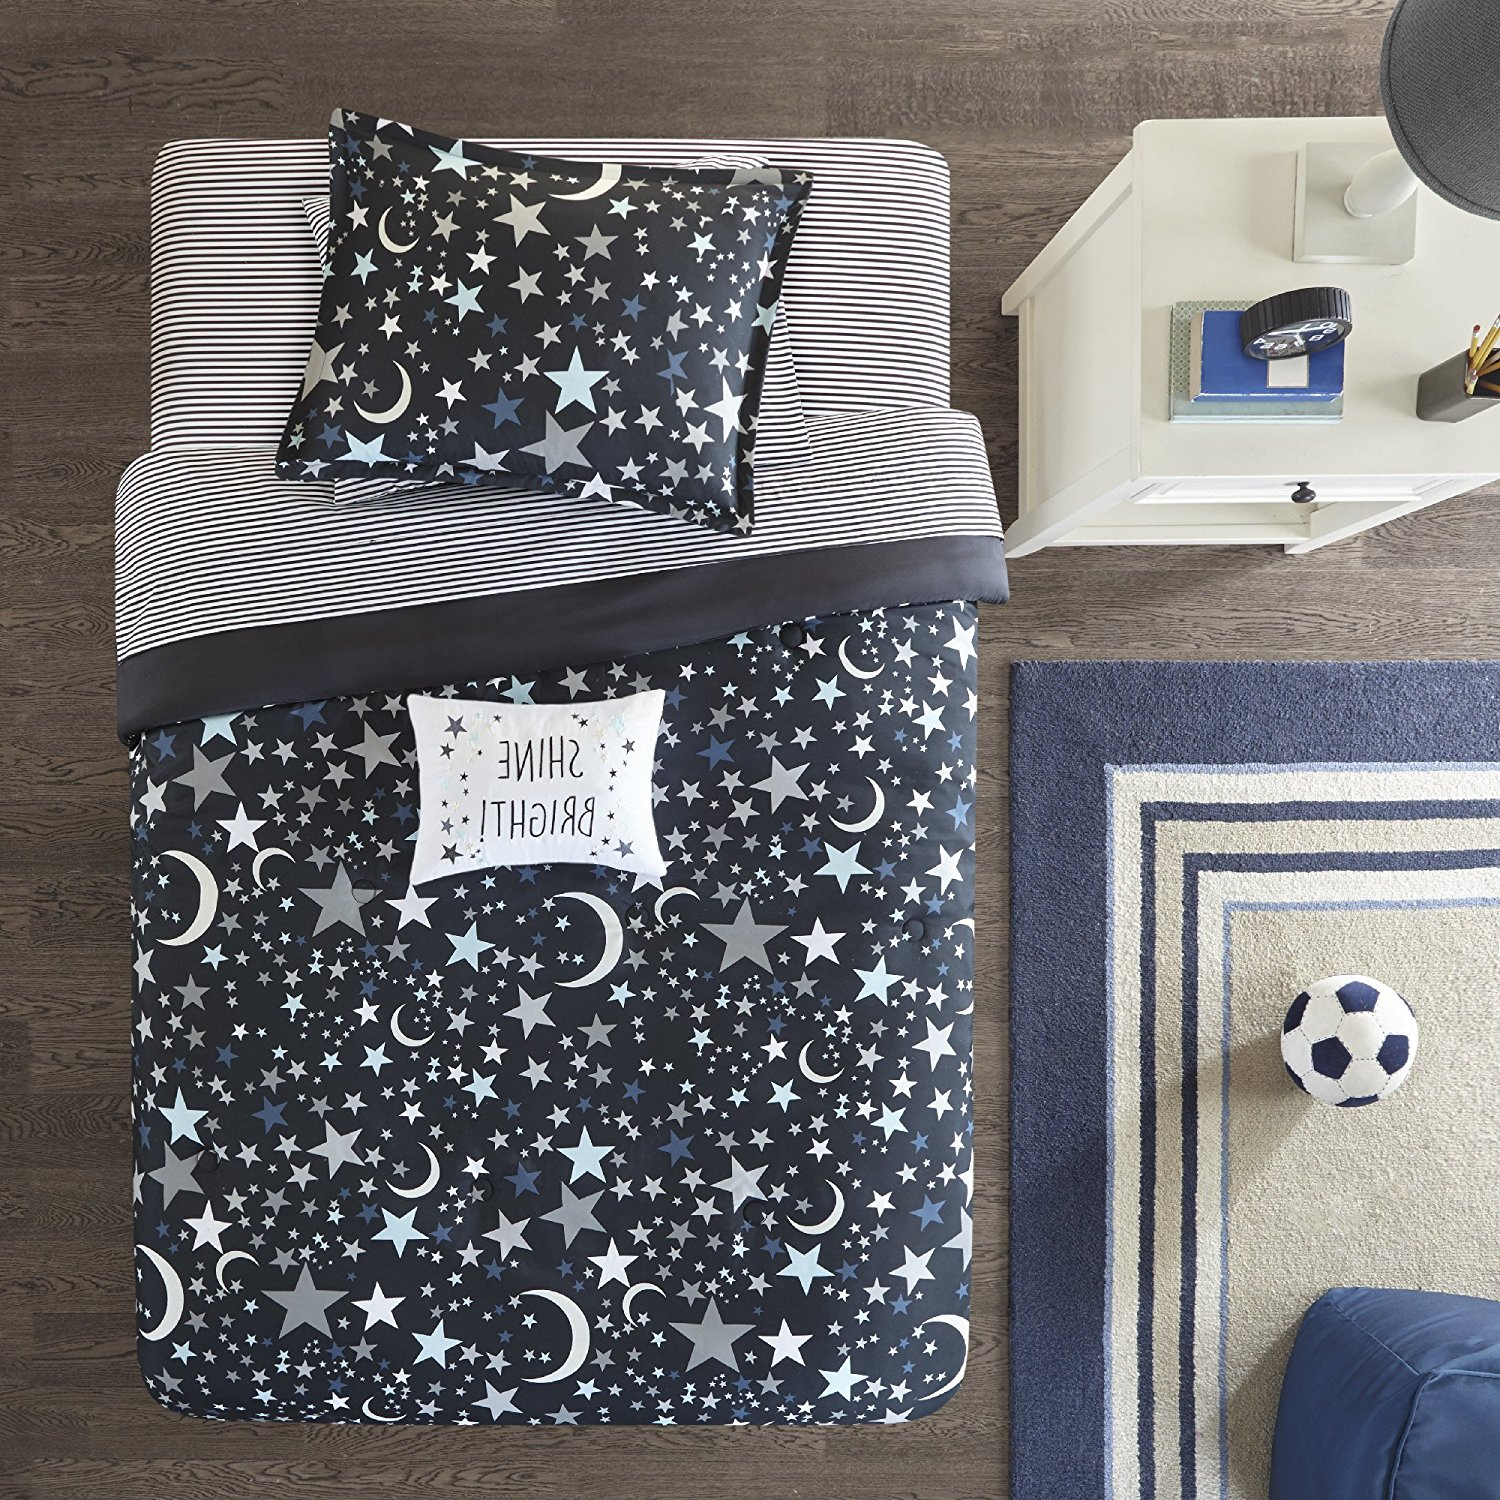 Ln 6 Piece Navy Blue Black Grey Star Moon Themed Comforter Twin Set, Kids All Over Space Shooting Stars Bedding, Cute Boys Girls Multi Outer Space Themed Pattern, Gray Microfiber